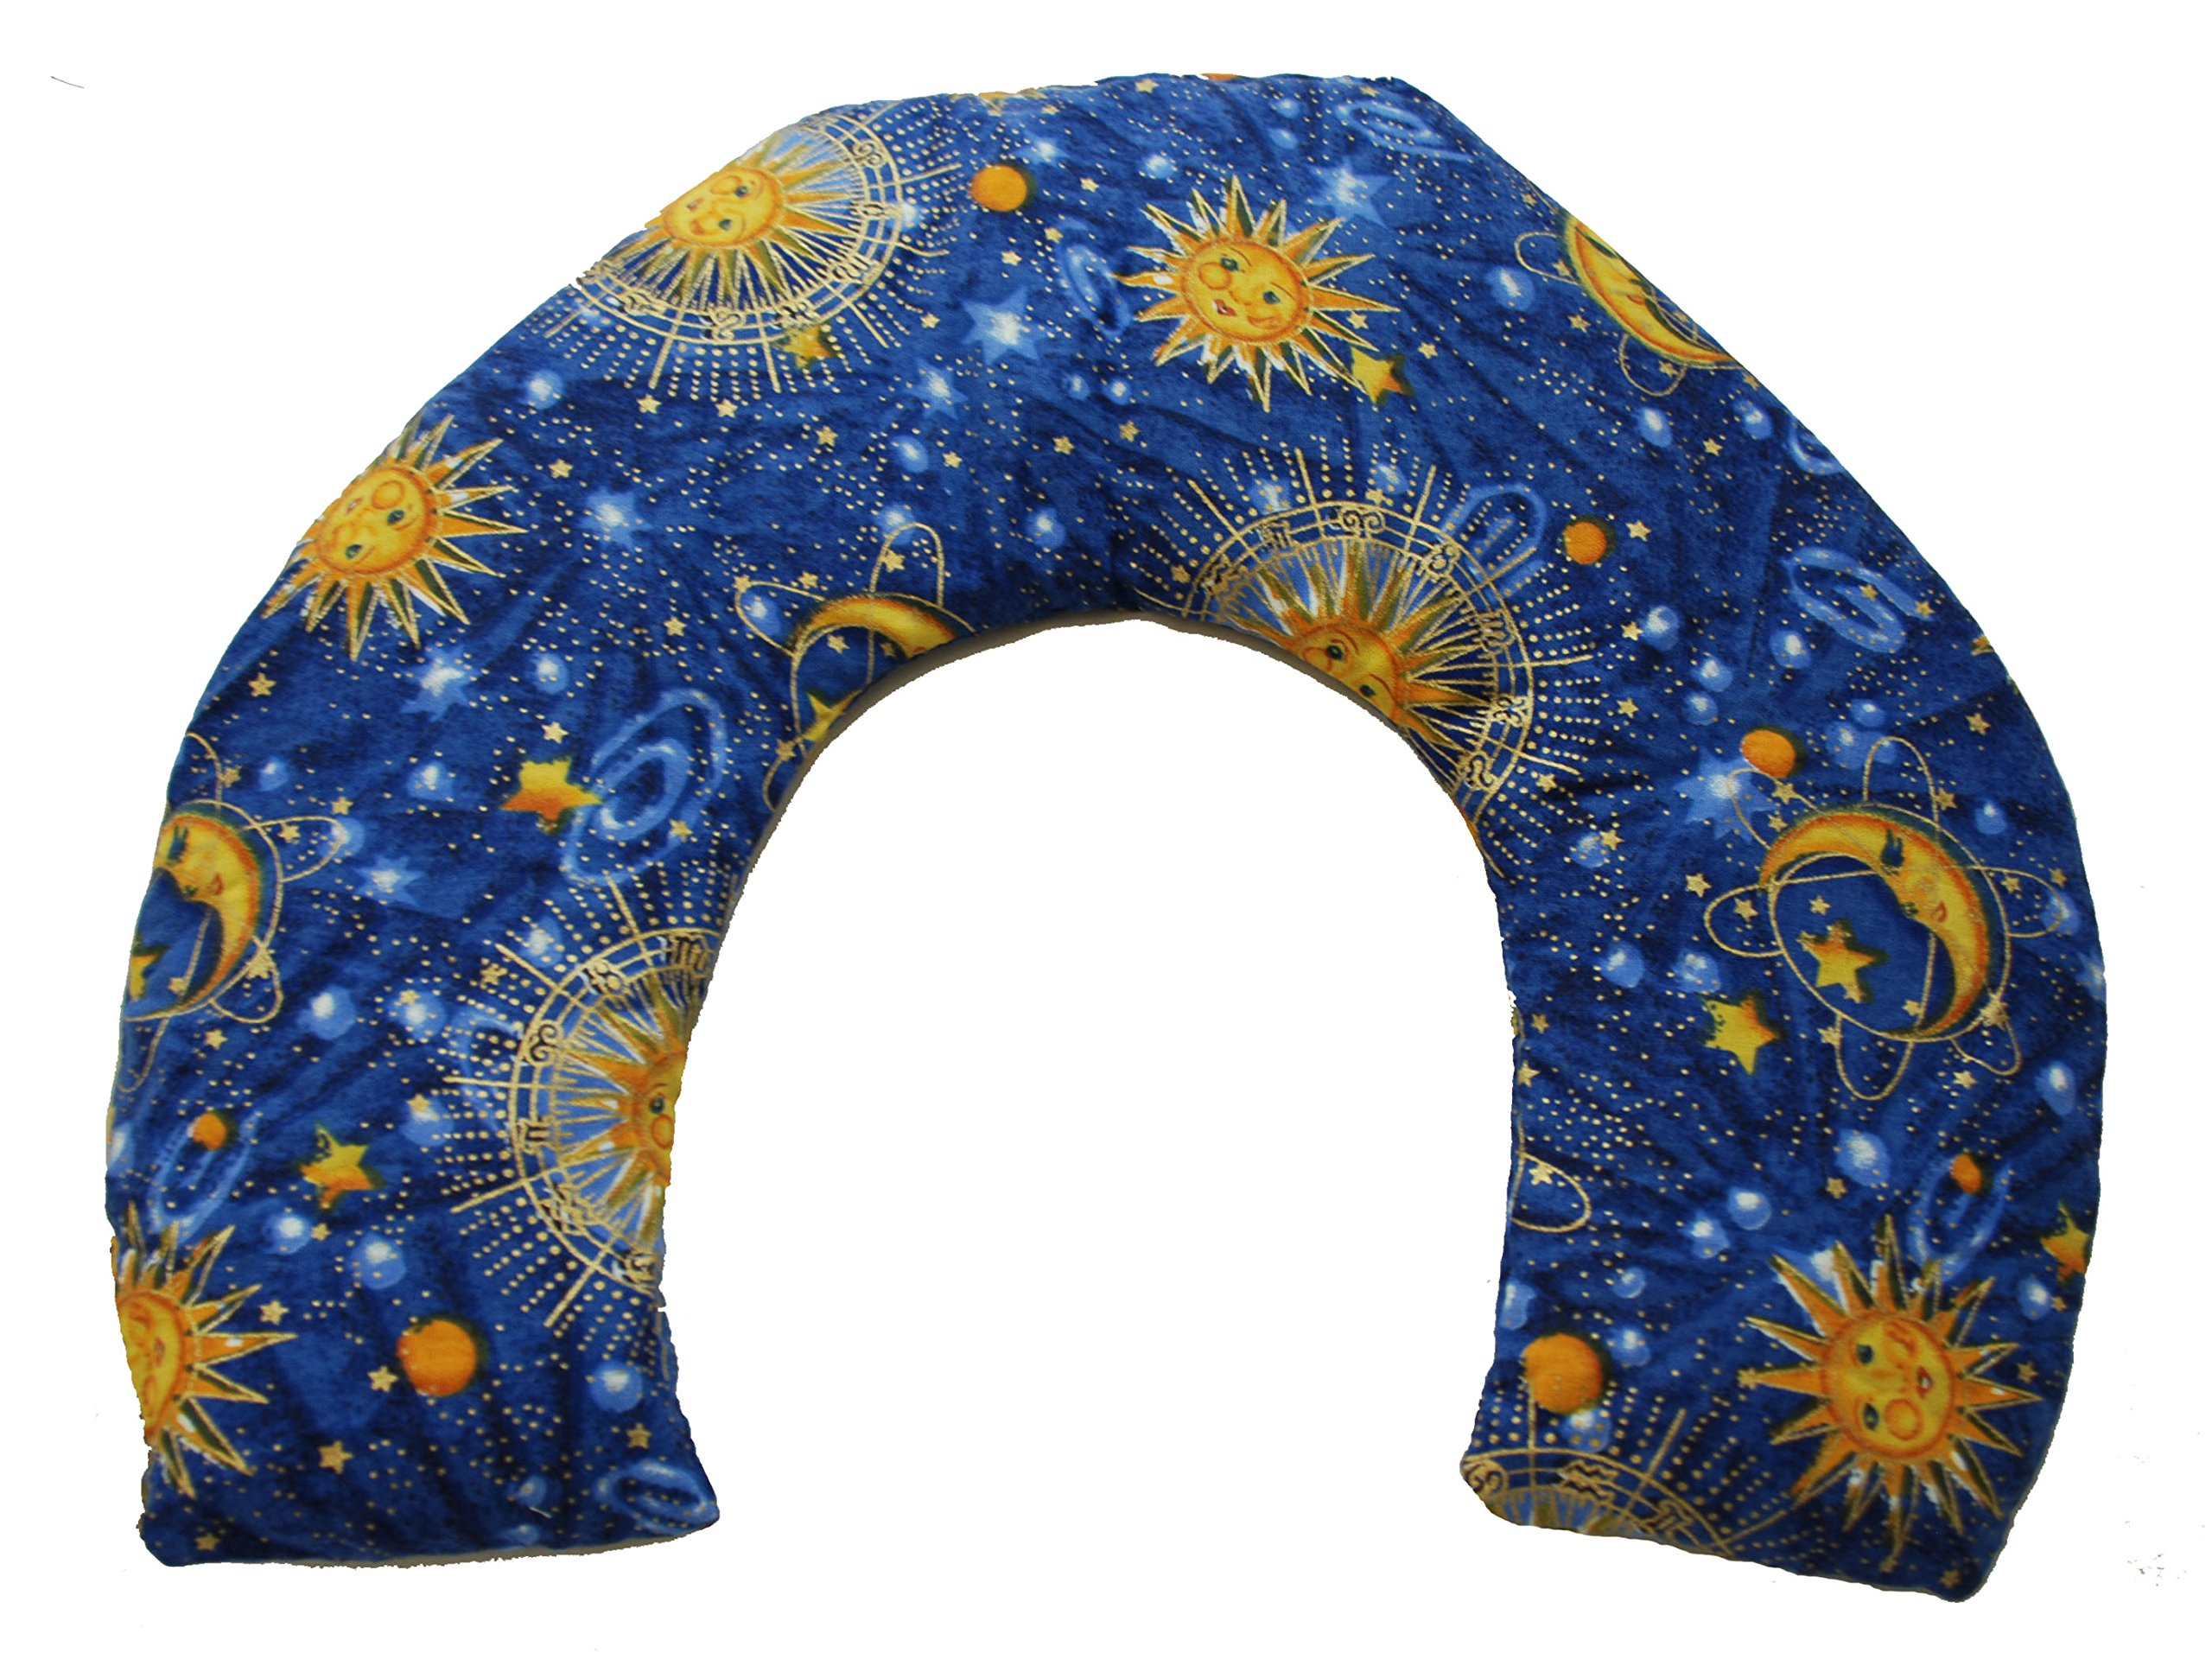 Nature's Approach Aromatherapy Neck Wrap Herbal Pack, Celestial Indigo by Nature's Approach